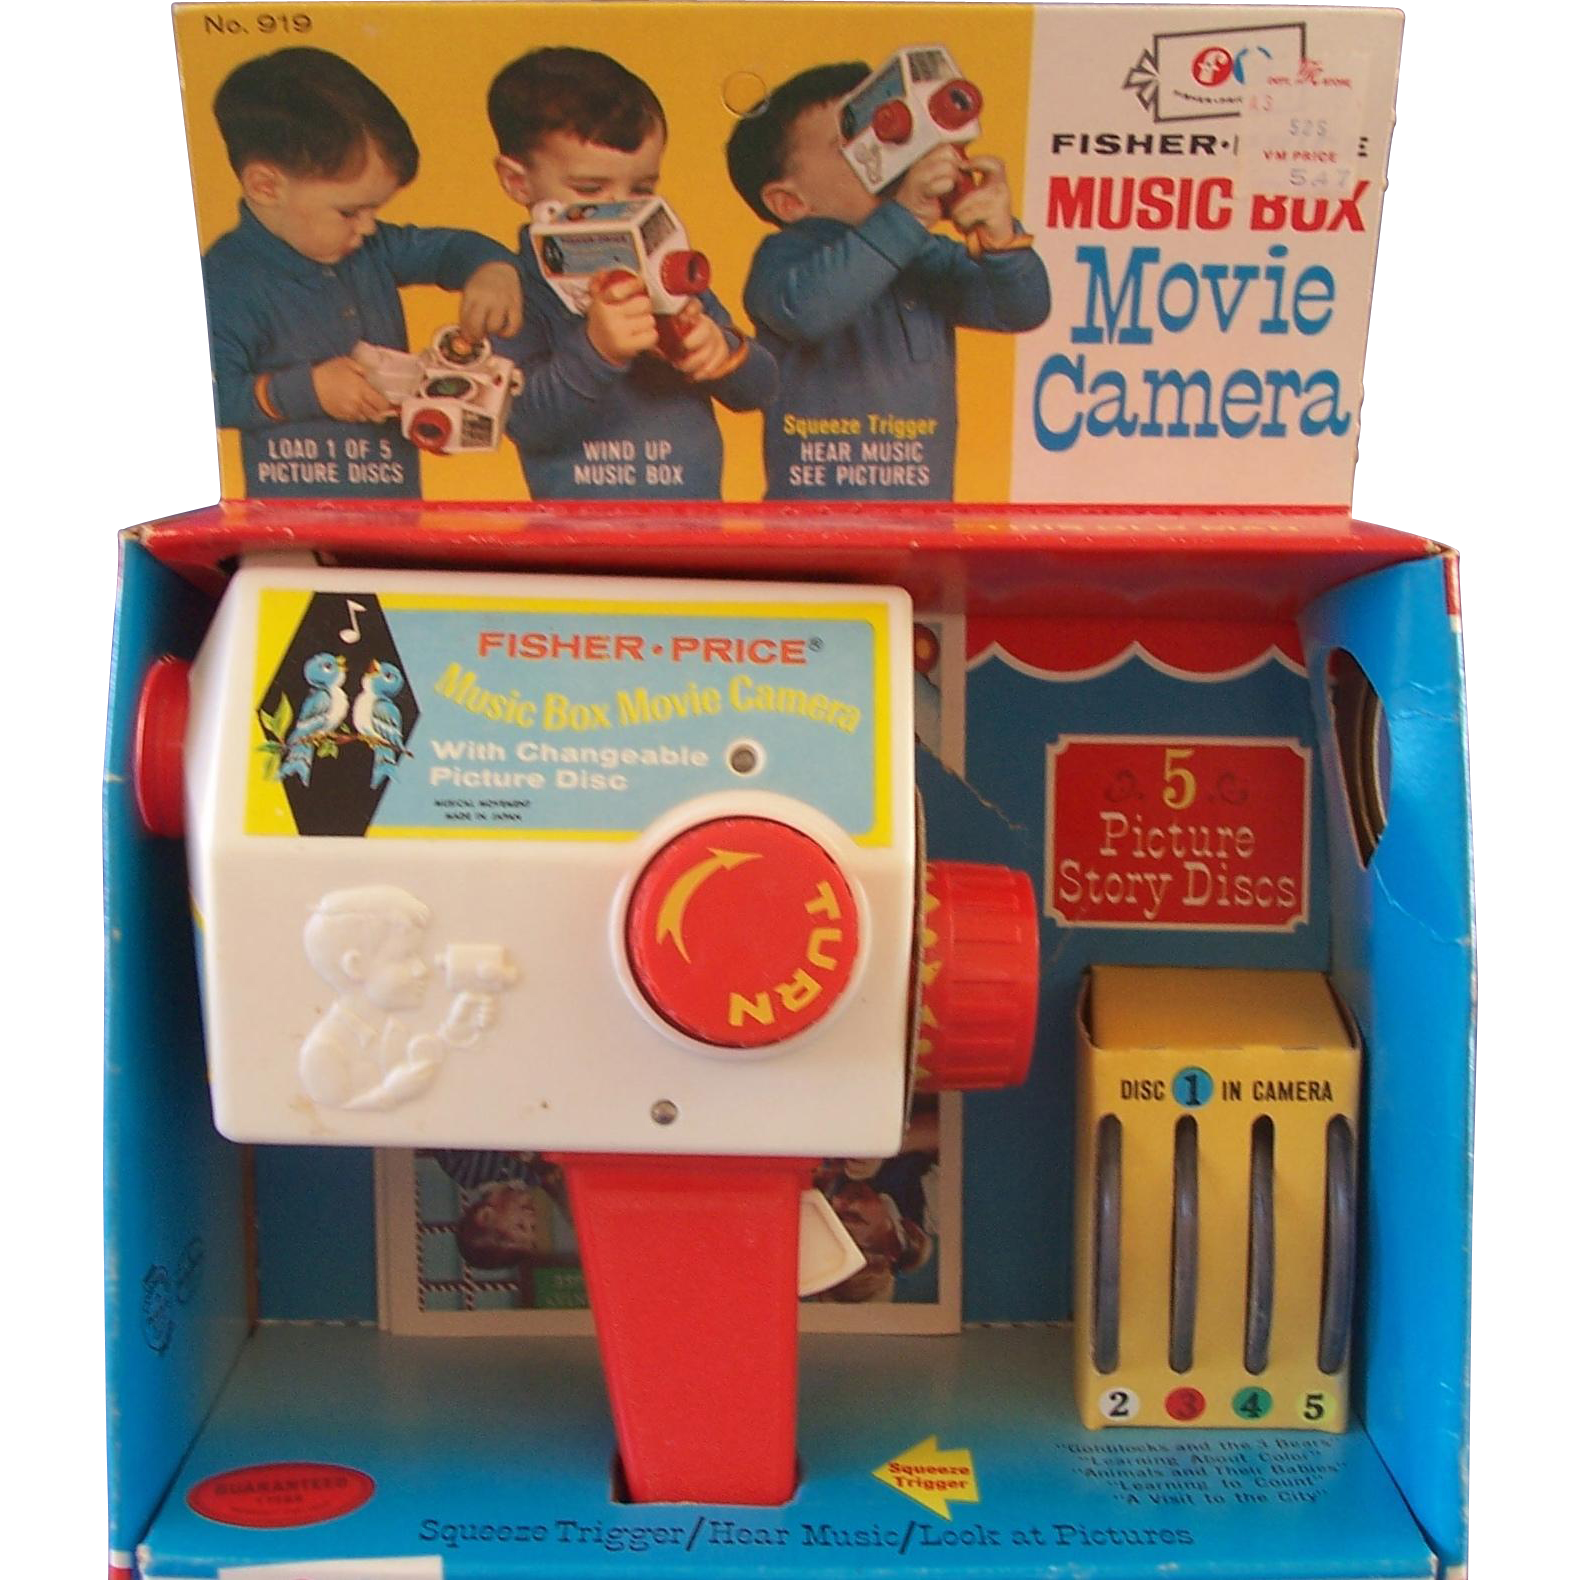 Fisher Price Music Box Movie Camera - Original Box